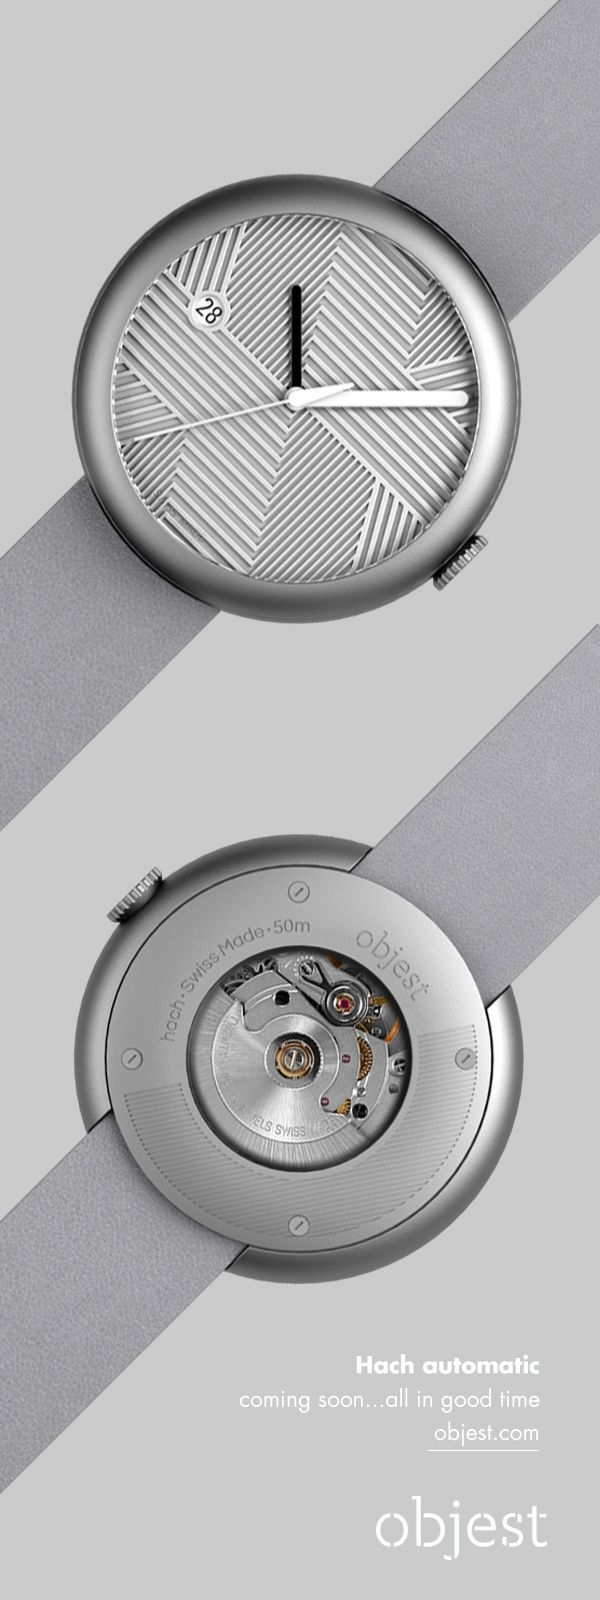 objest.com Objest hach silver/grey automatic. This cheeky little chap has a 42 mm case, ETA movement and comes with the same dial treatments we use in our quartz watches. Swiss made, always a good time. Launching soon, all in good time...info@objest.com